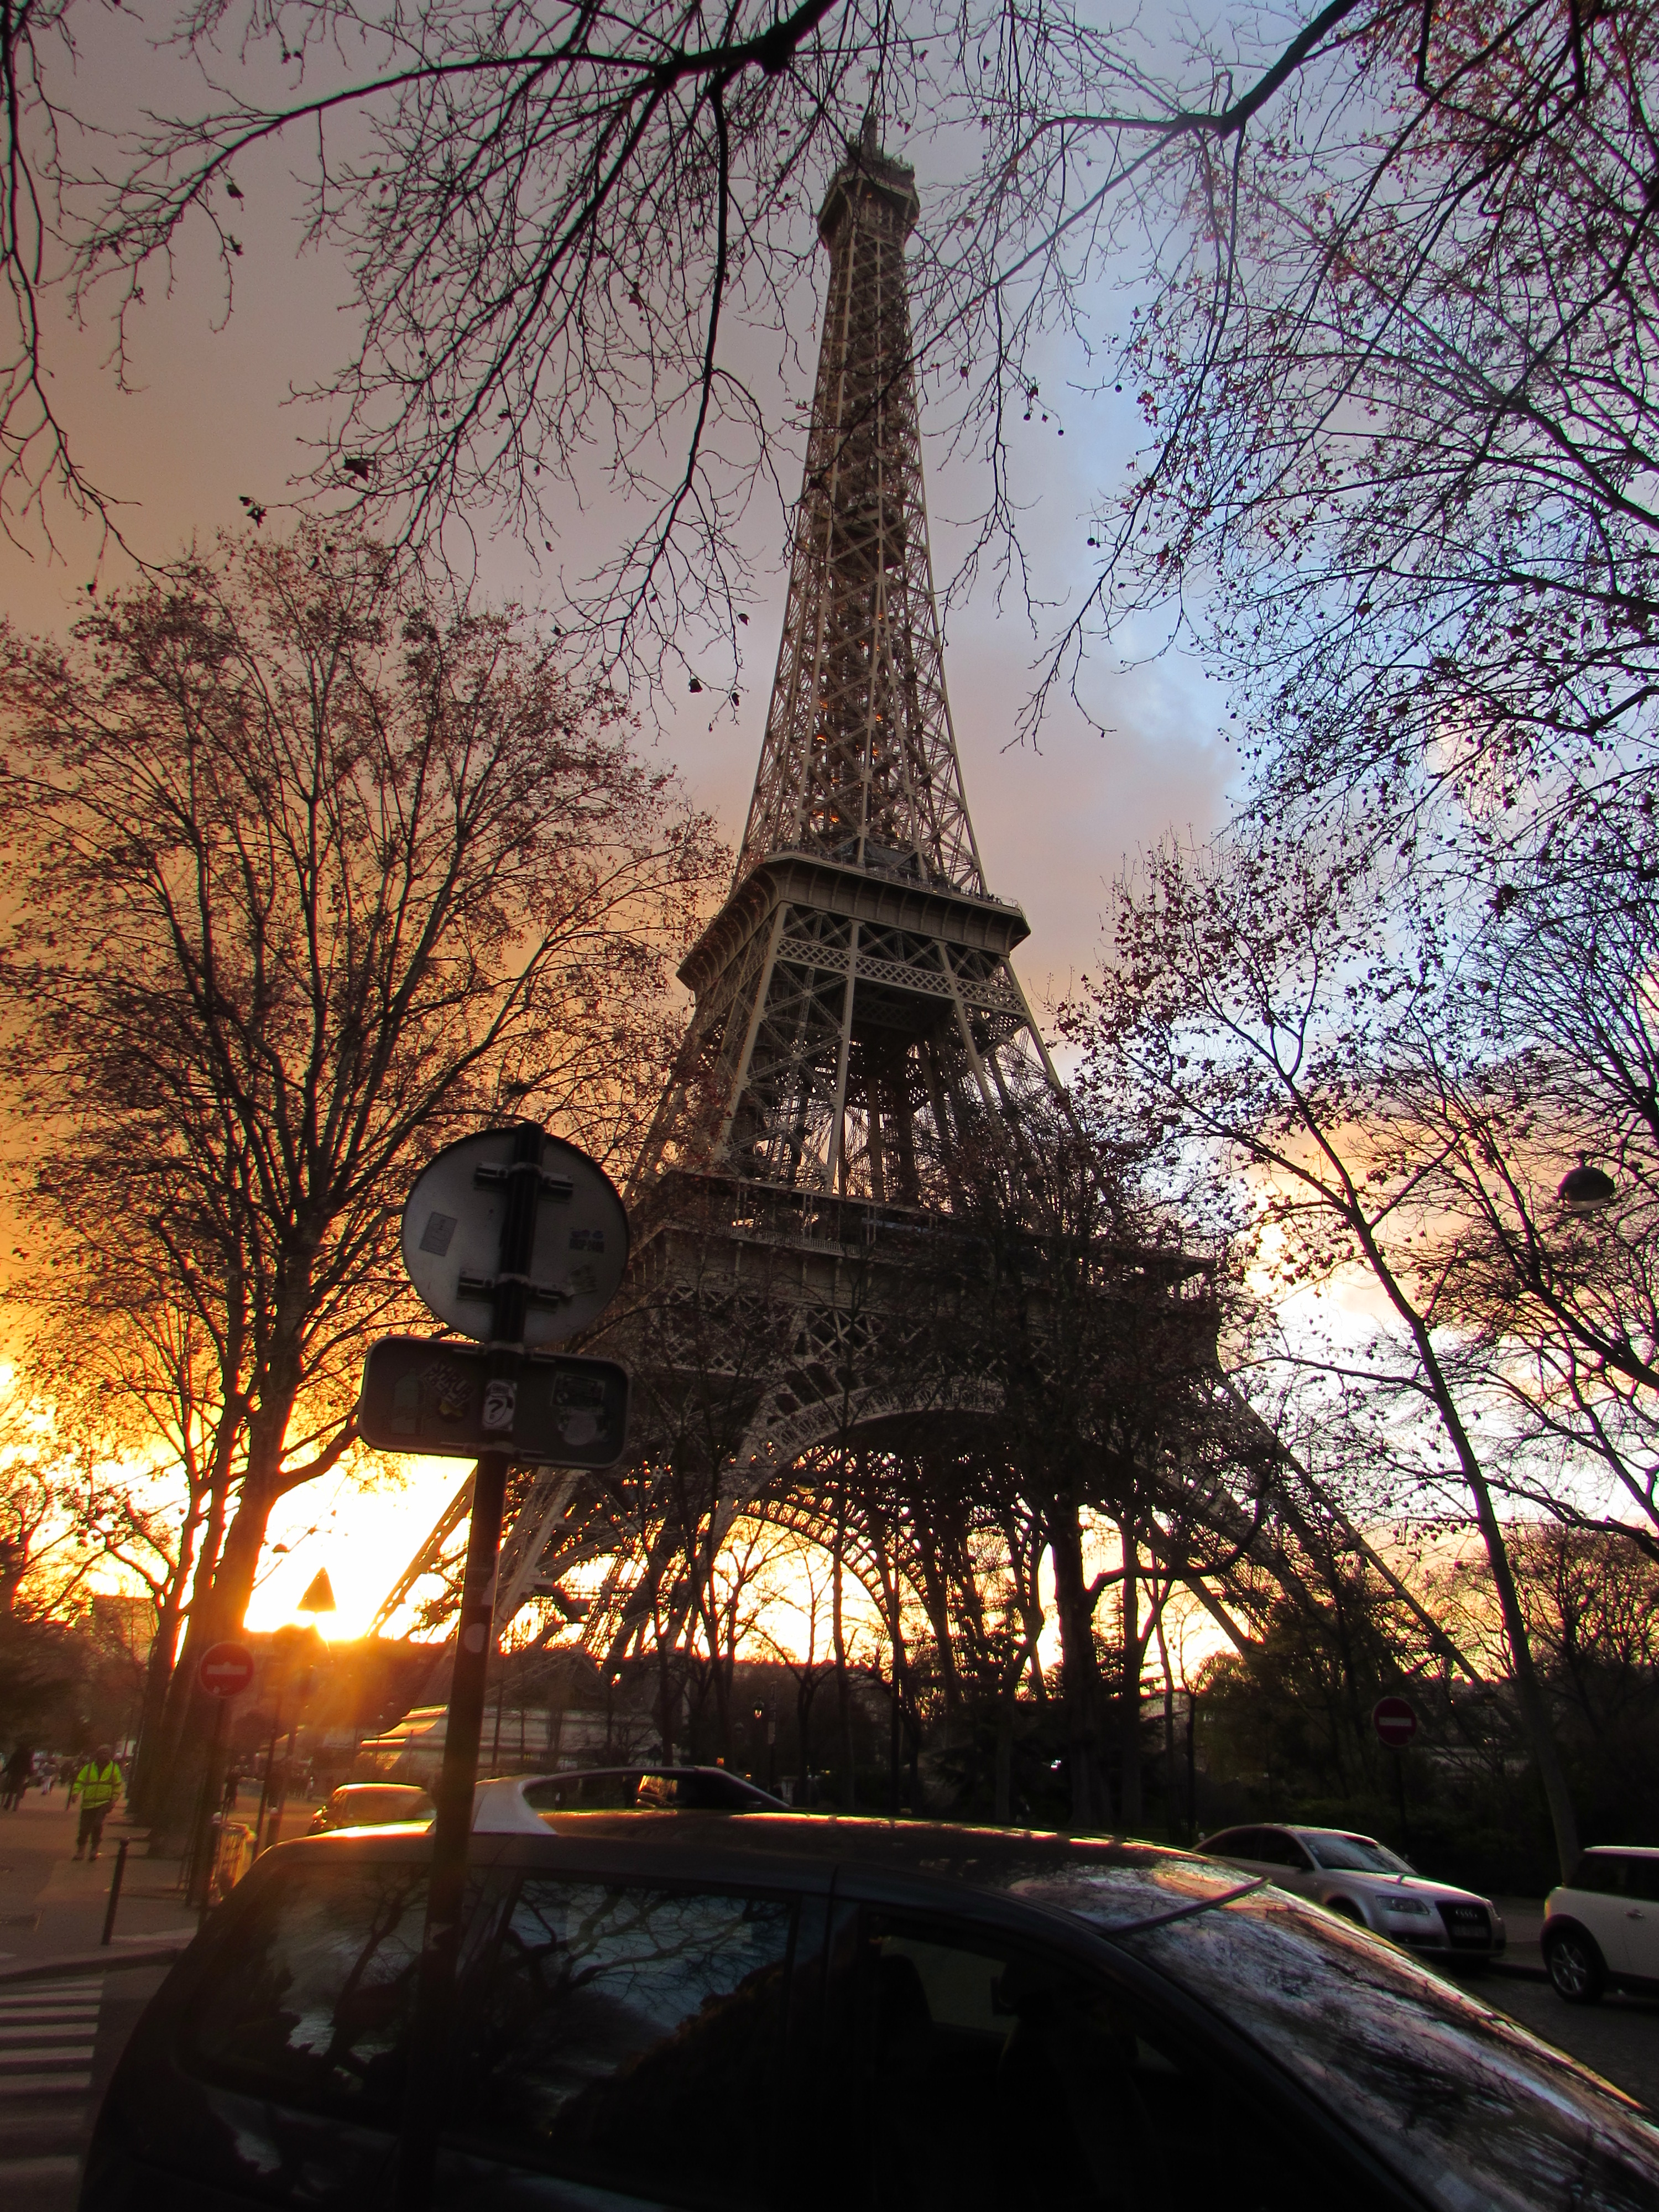 Living in Europe with anxiety, I travelled to Paris from Barcelona and saw the Eiffel tower.